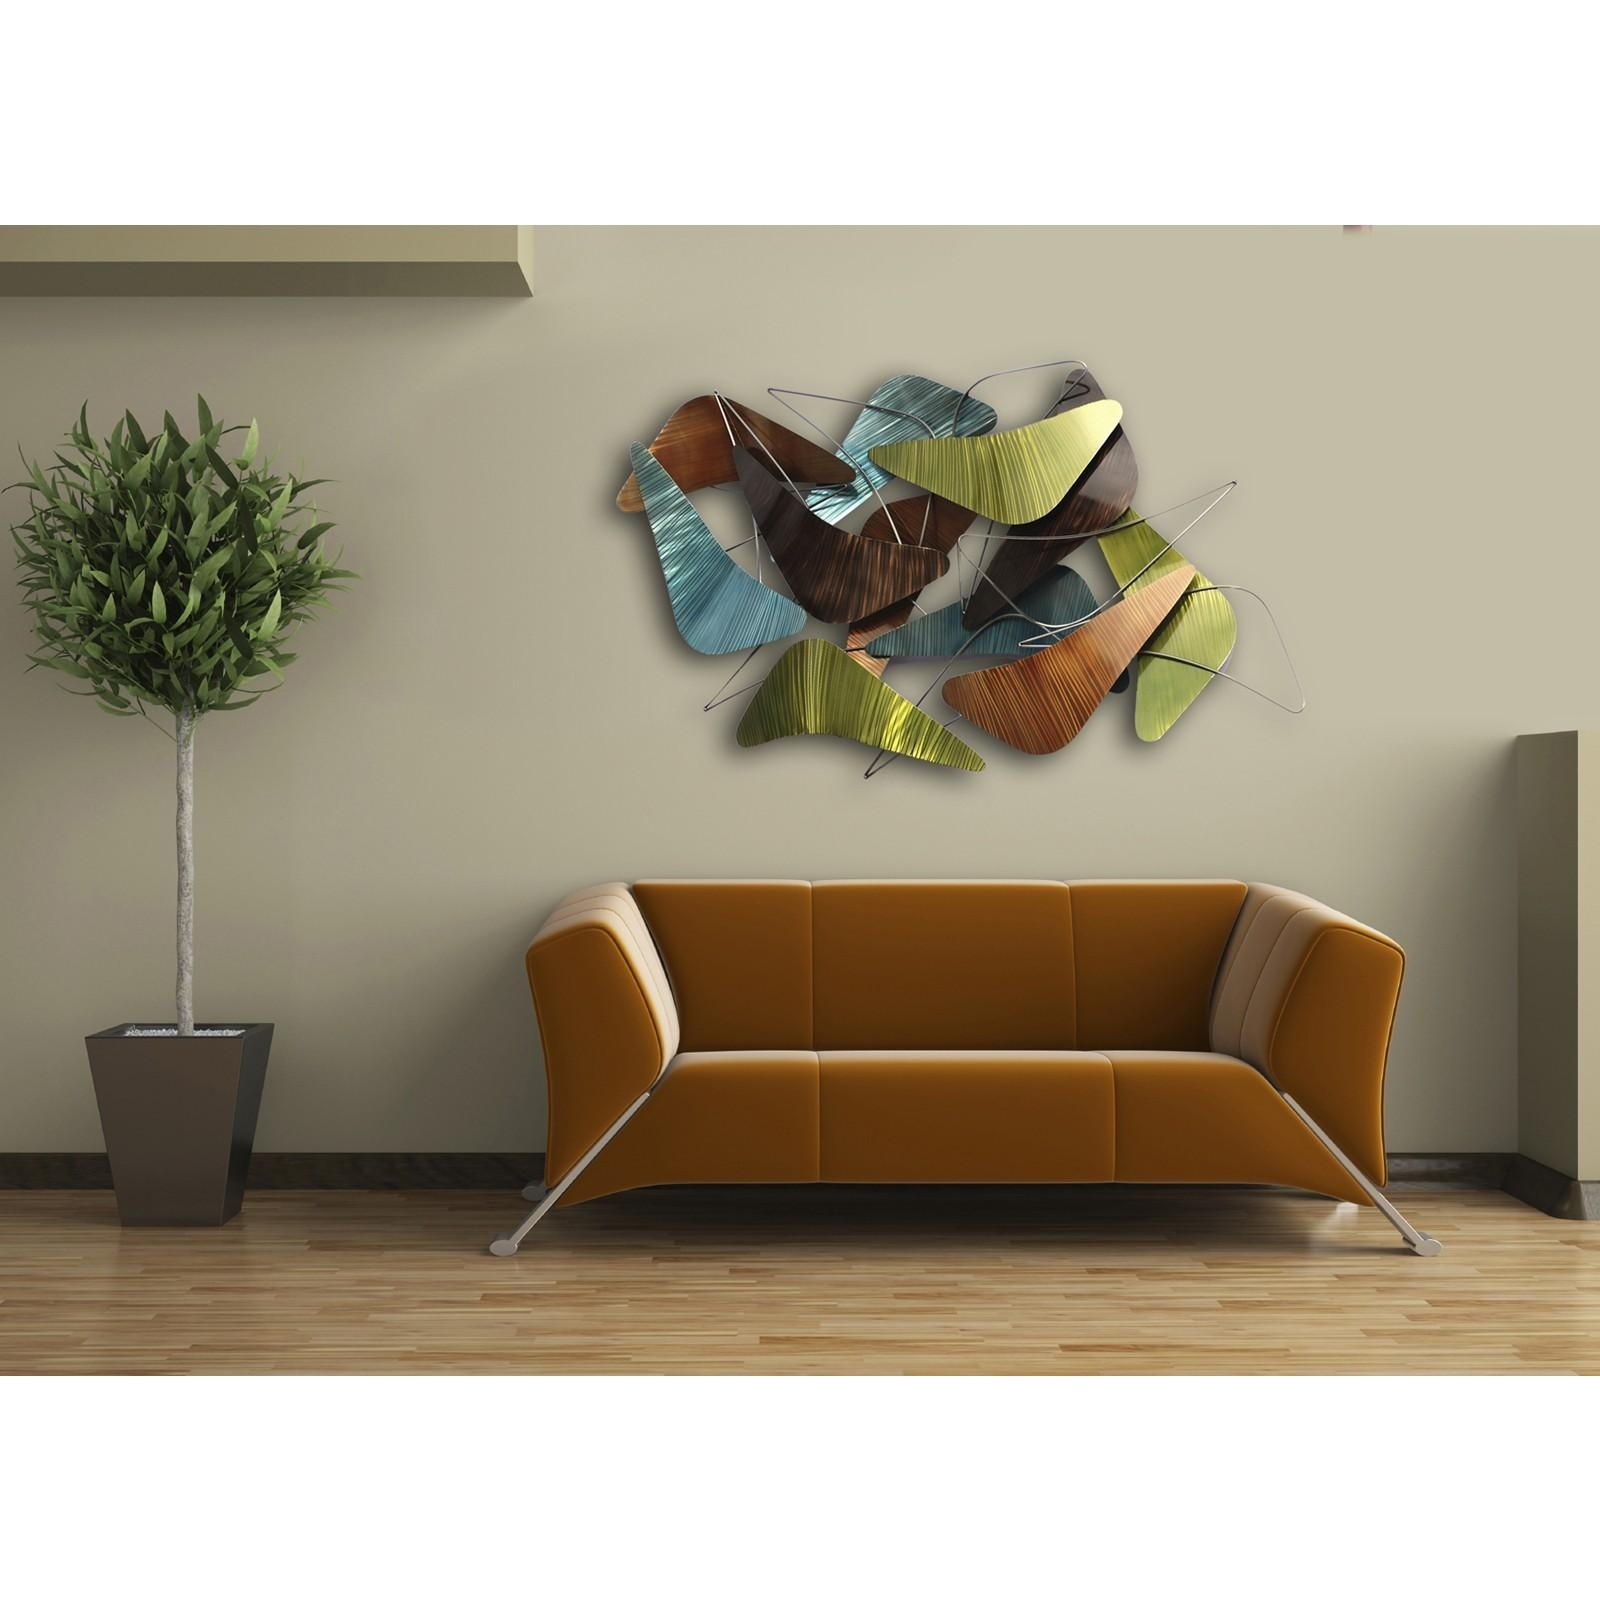 Wall Art Designs: Nova Lighting Wall Art Nova Of California, Nova Regarding Nova Wall Art (Image 19 of 20)